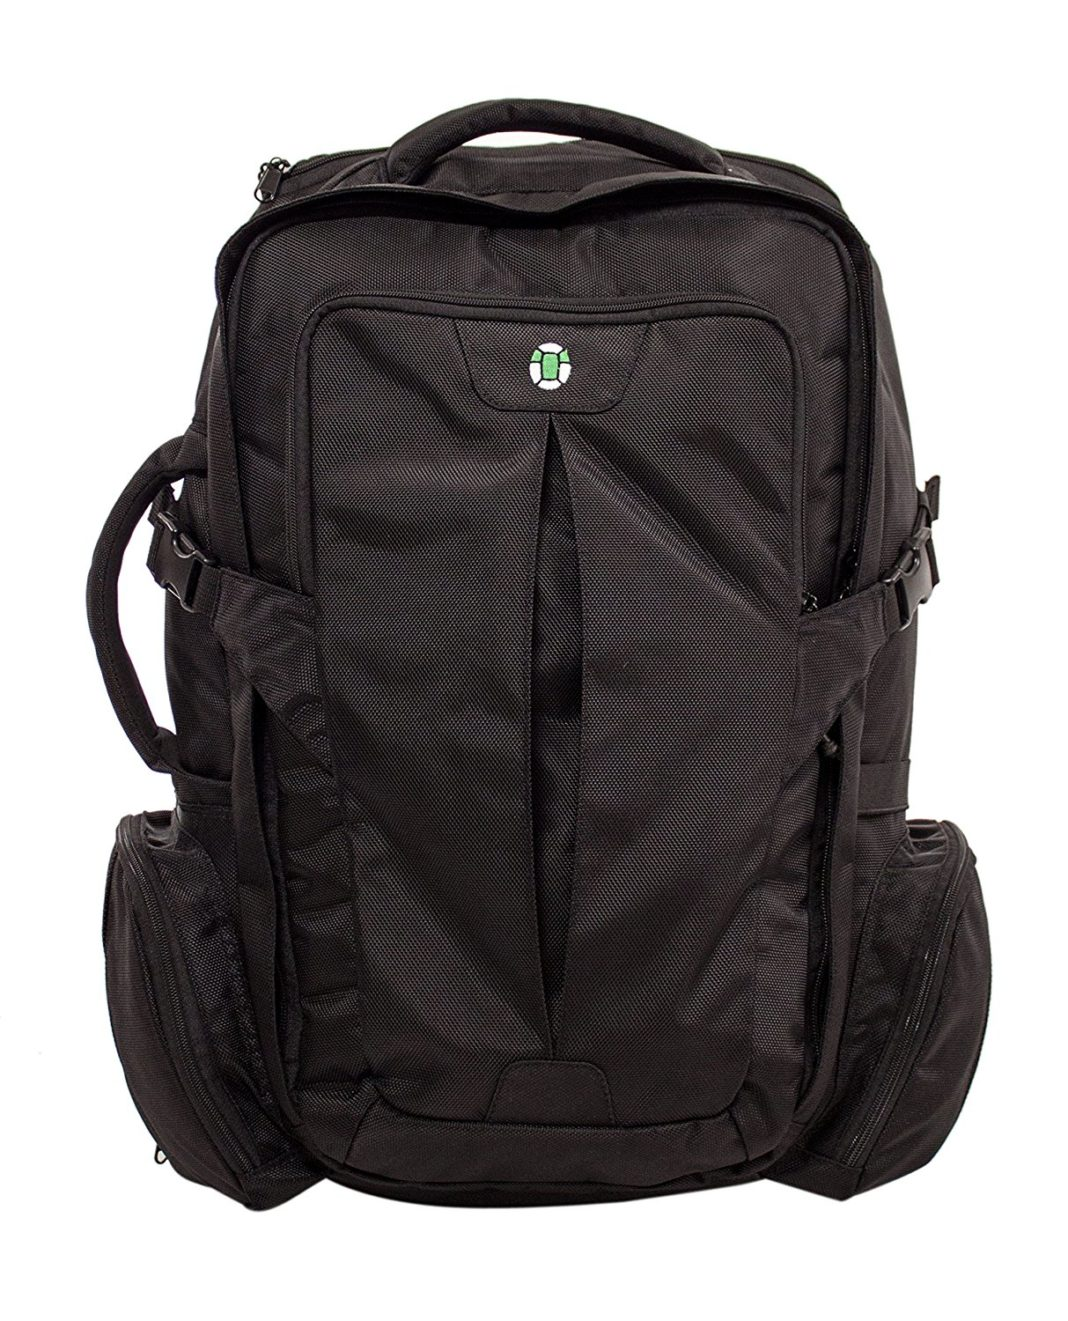 gifts for travelers - Tortuga Travel Backpack